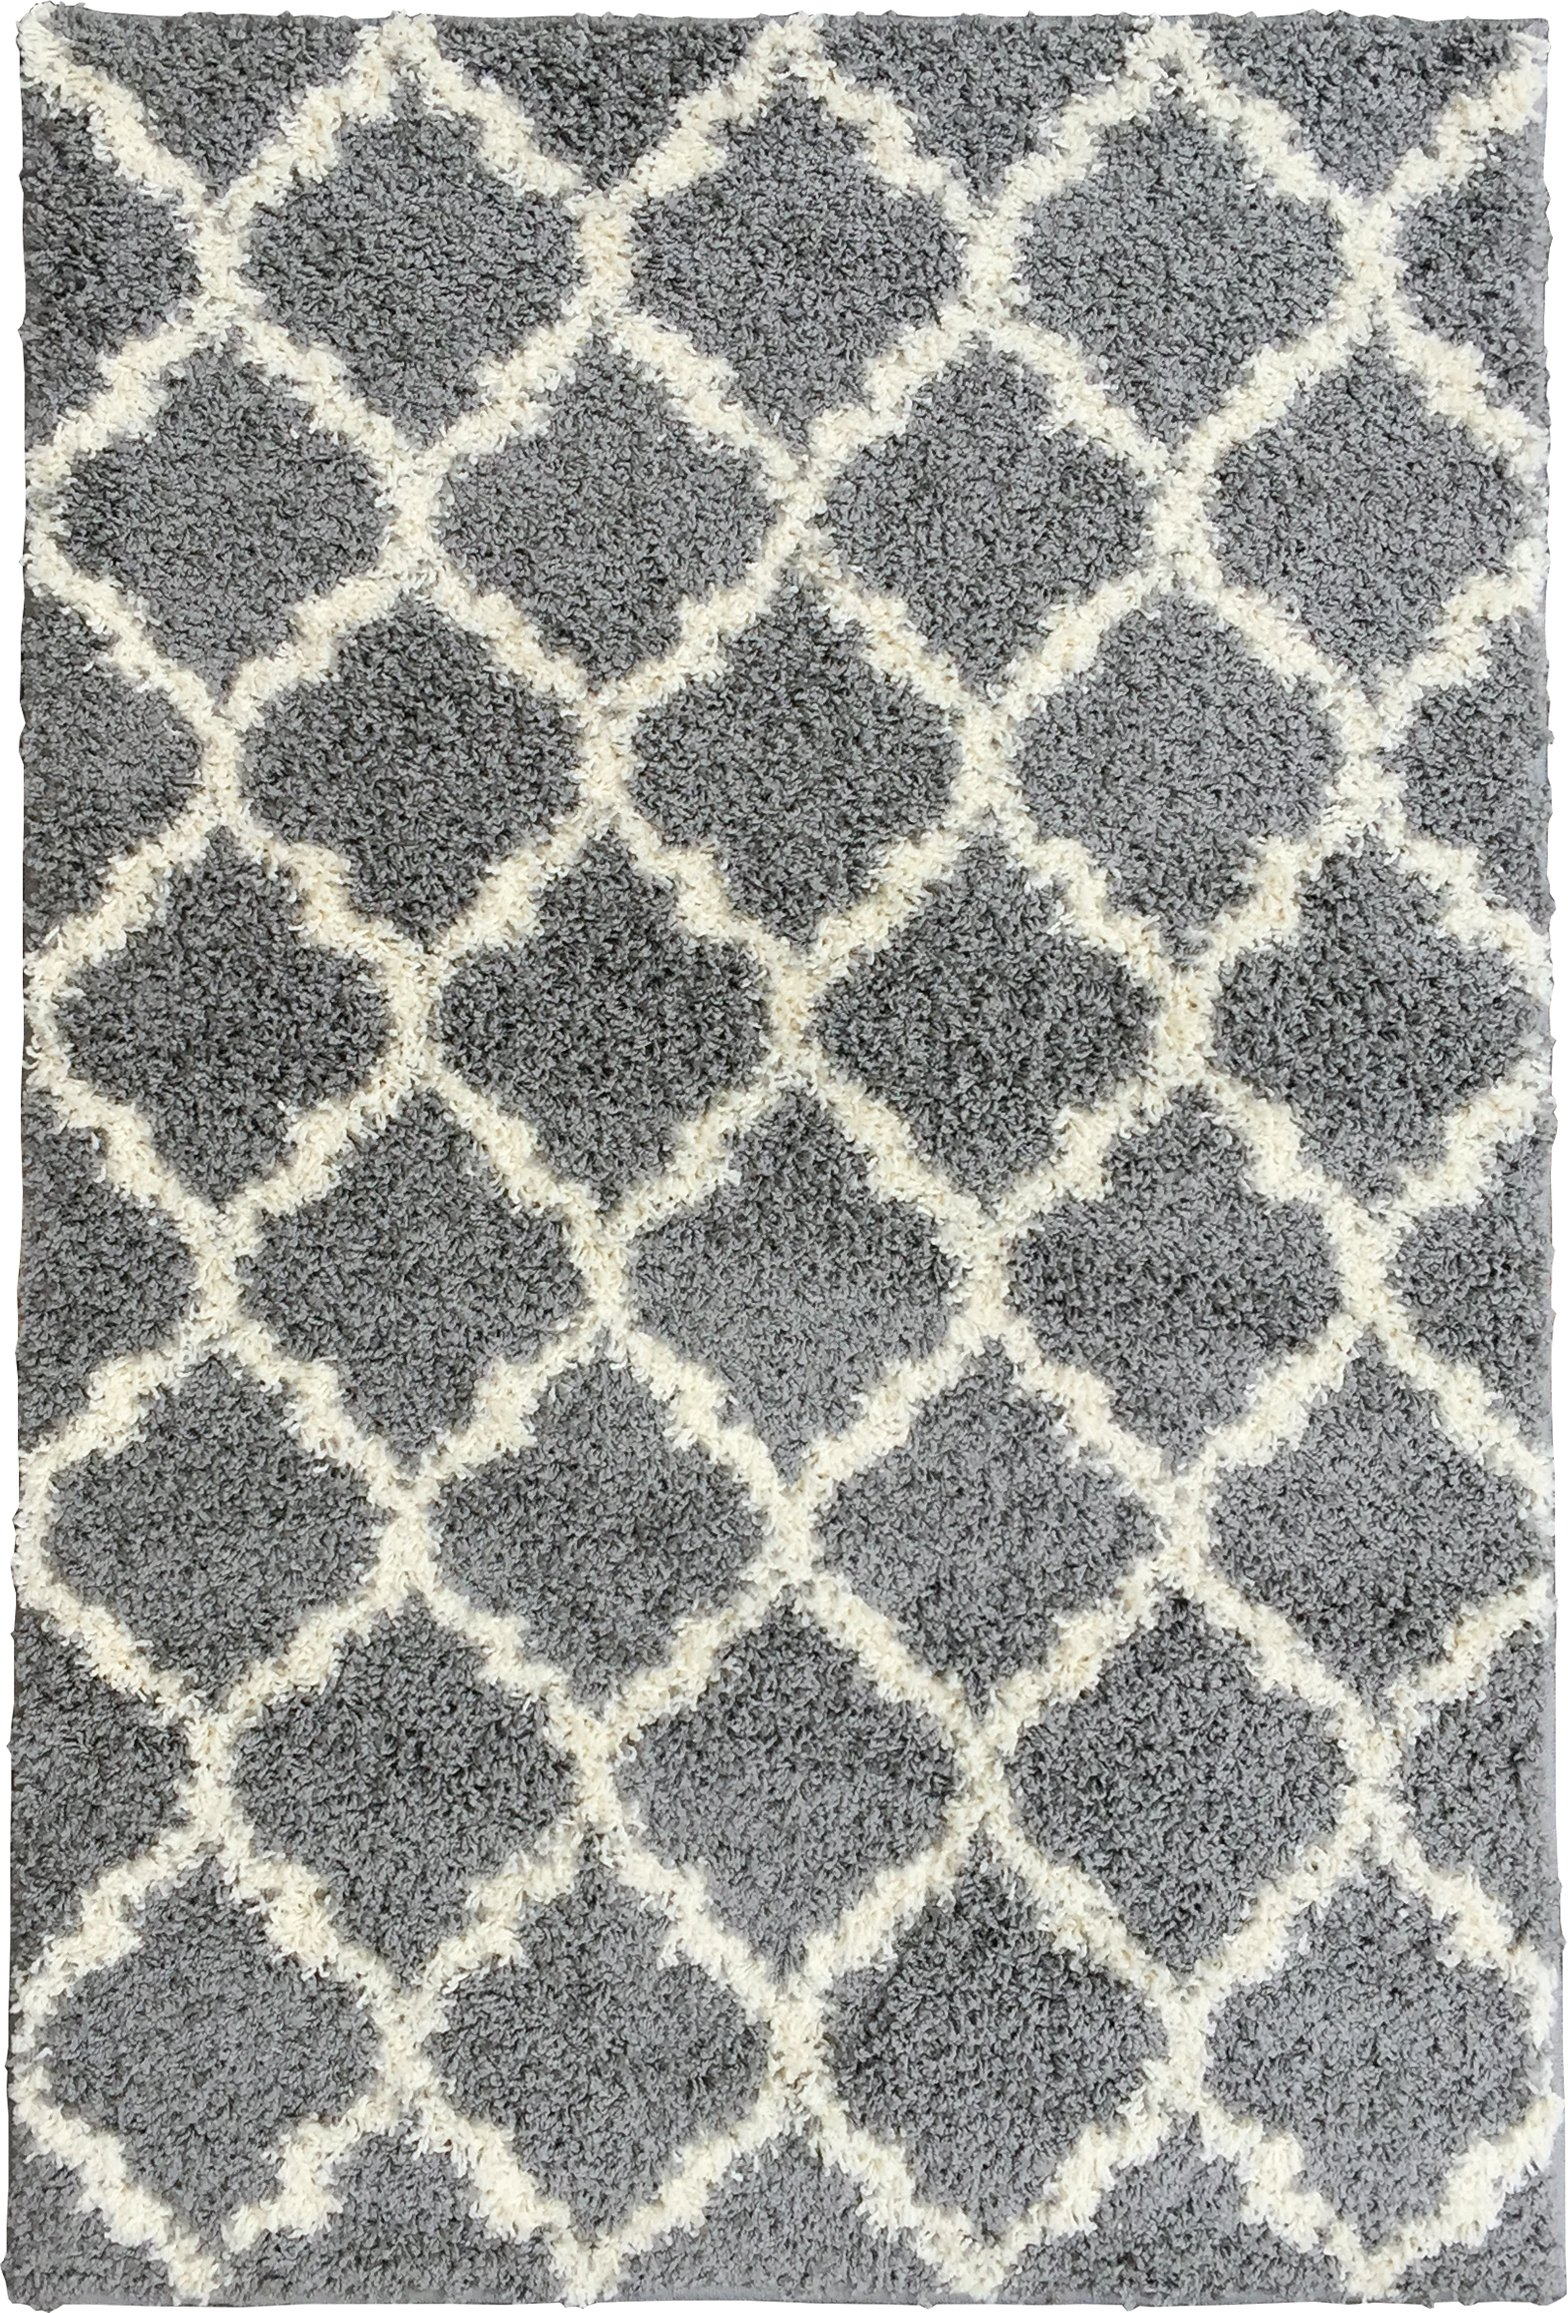 Ottomanson Ultimate Shaggy Collection Moroccan Trellis Design Shag Rug Contemporary Bedroom and  Living room Soft Shag Rugs, Grey, 7'10'' L x 9'10'' W by Ottomanson